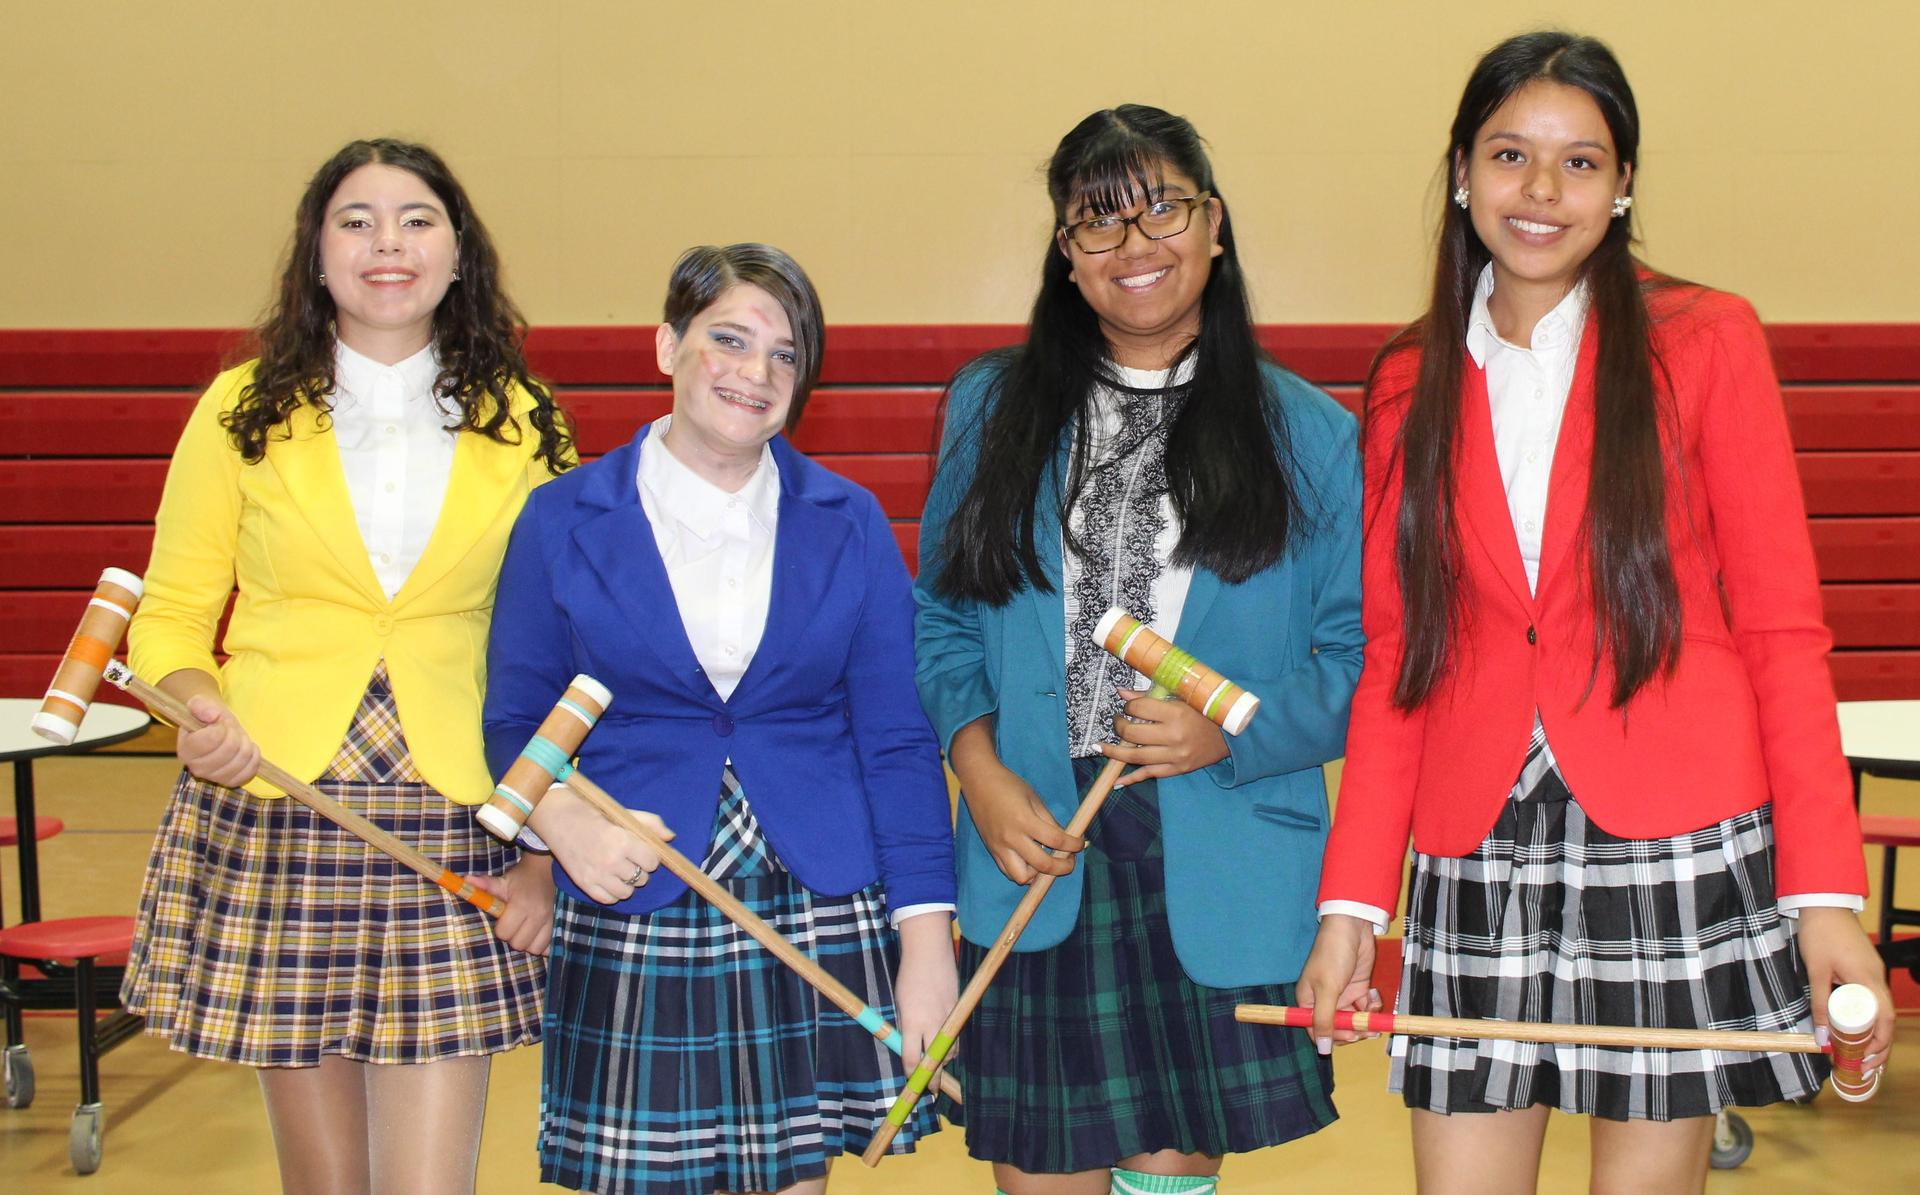 Jewel Goncalves, Alyssa Mandala, Jennifer Hernandez-Penafiel, Joanna Zapien as Croquet players